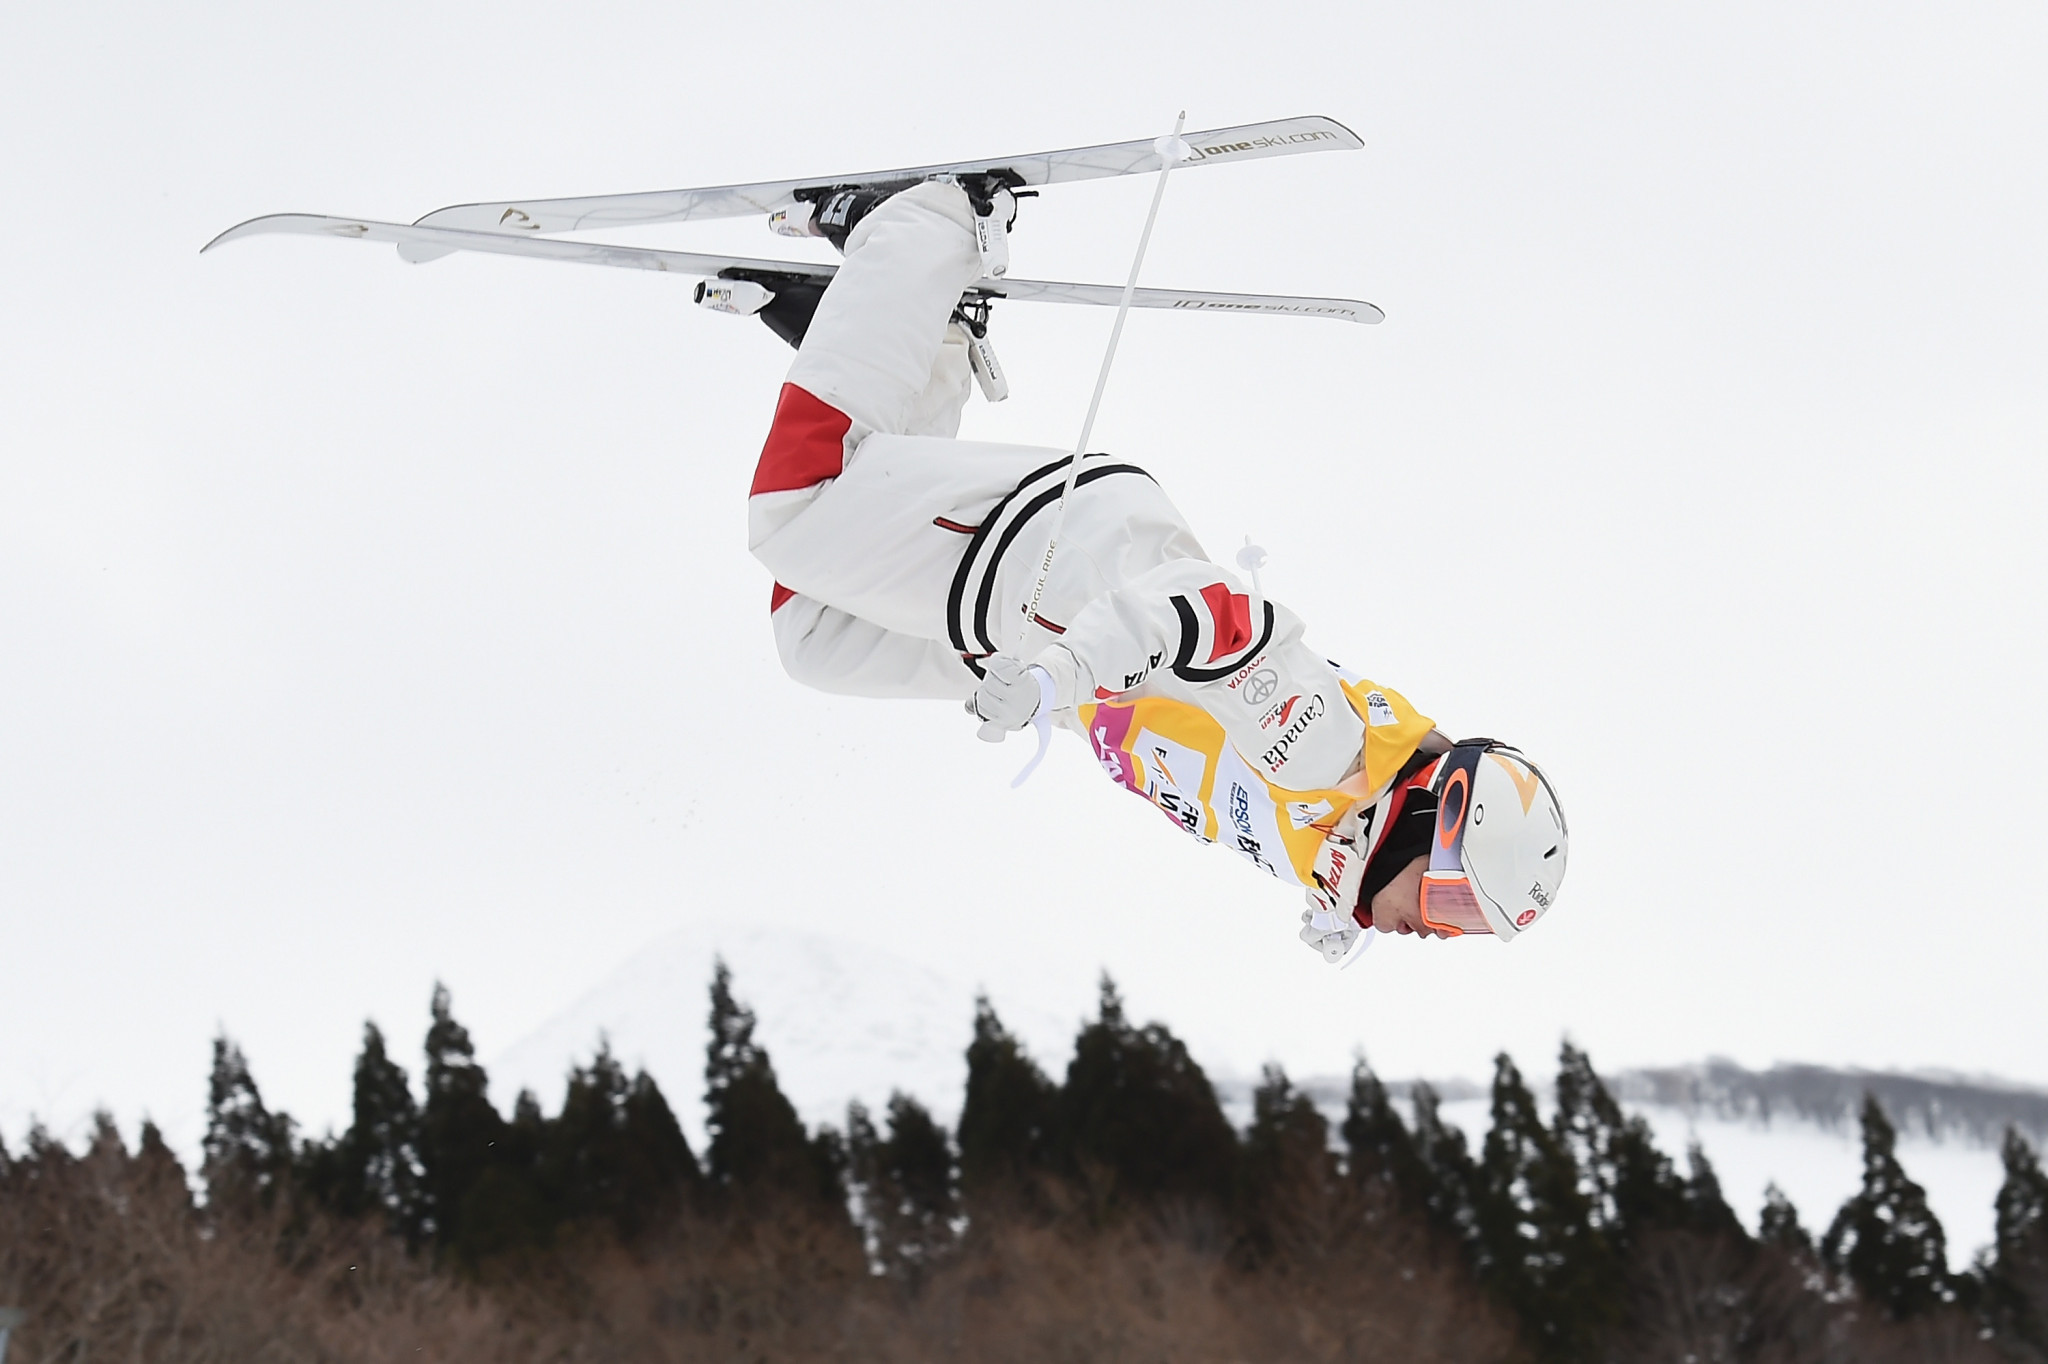 Canada's Mikaël Kingsbury has already wrapped up the FIS Moguls World Cup title for men ©Getty Images